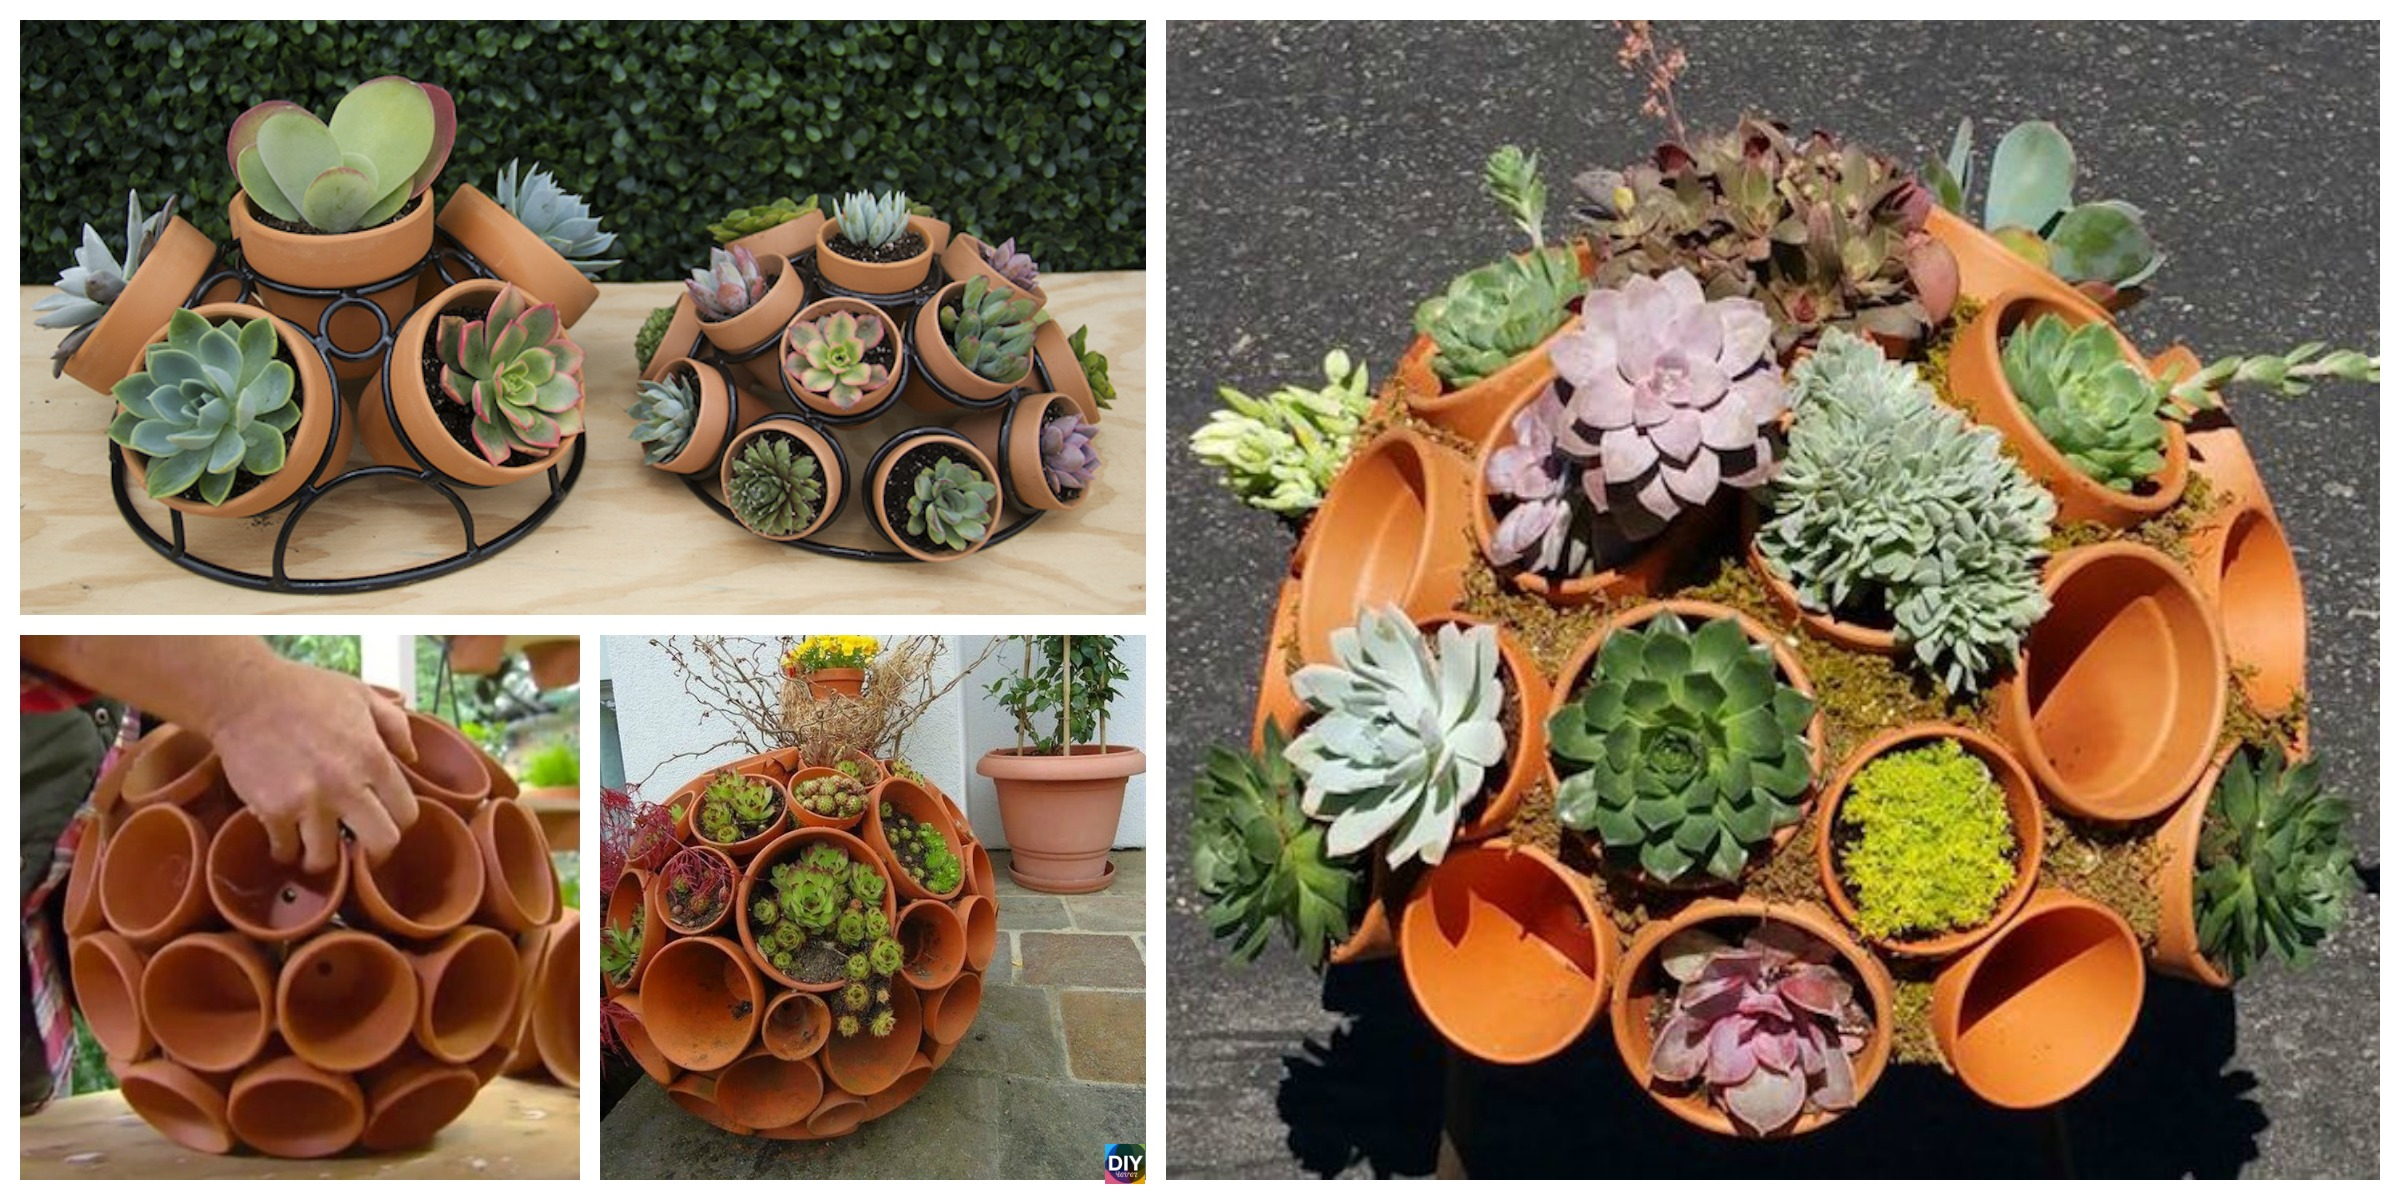 DIY Succulent Sphere Tutorial – Use Clay Pot